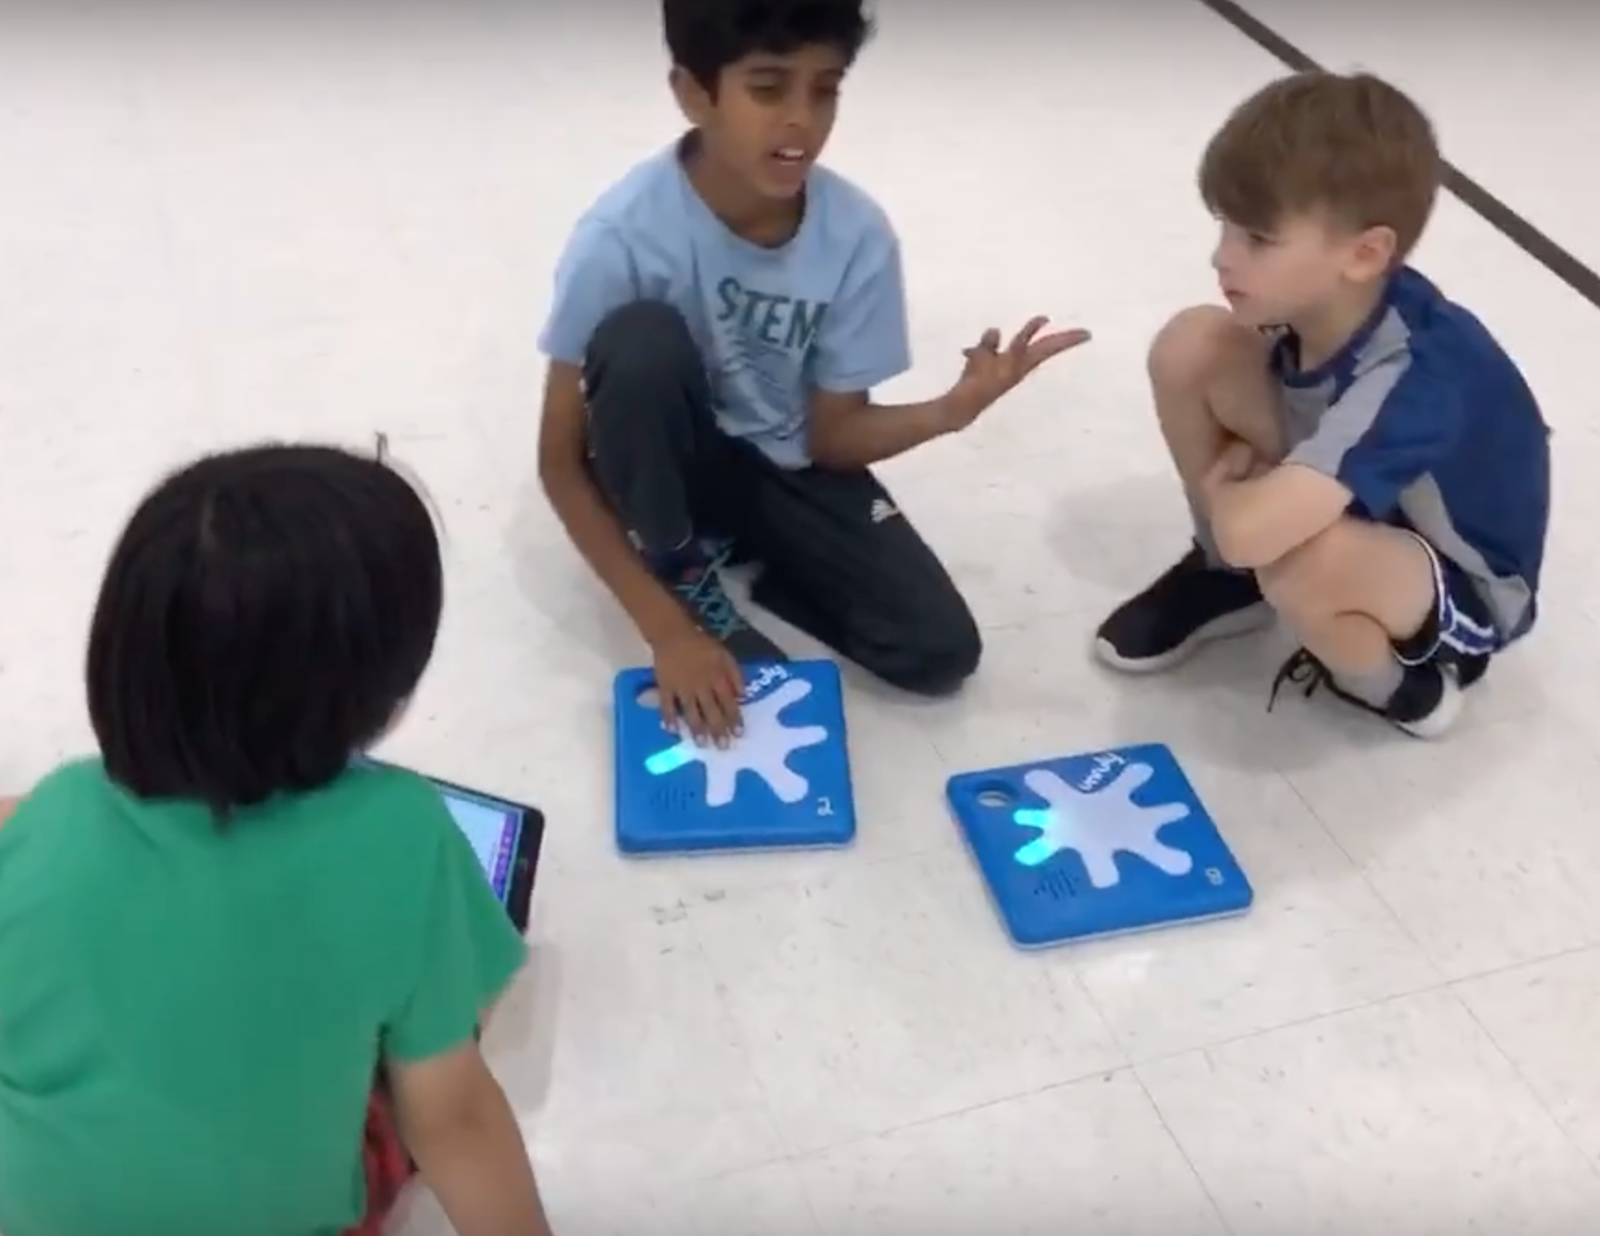 collaborative learning with unruly splats